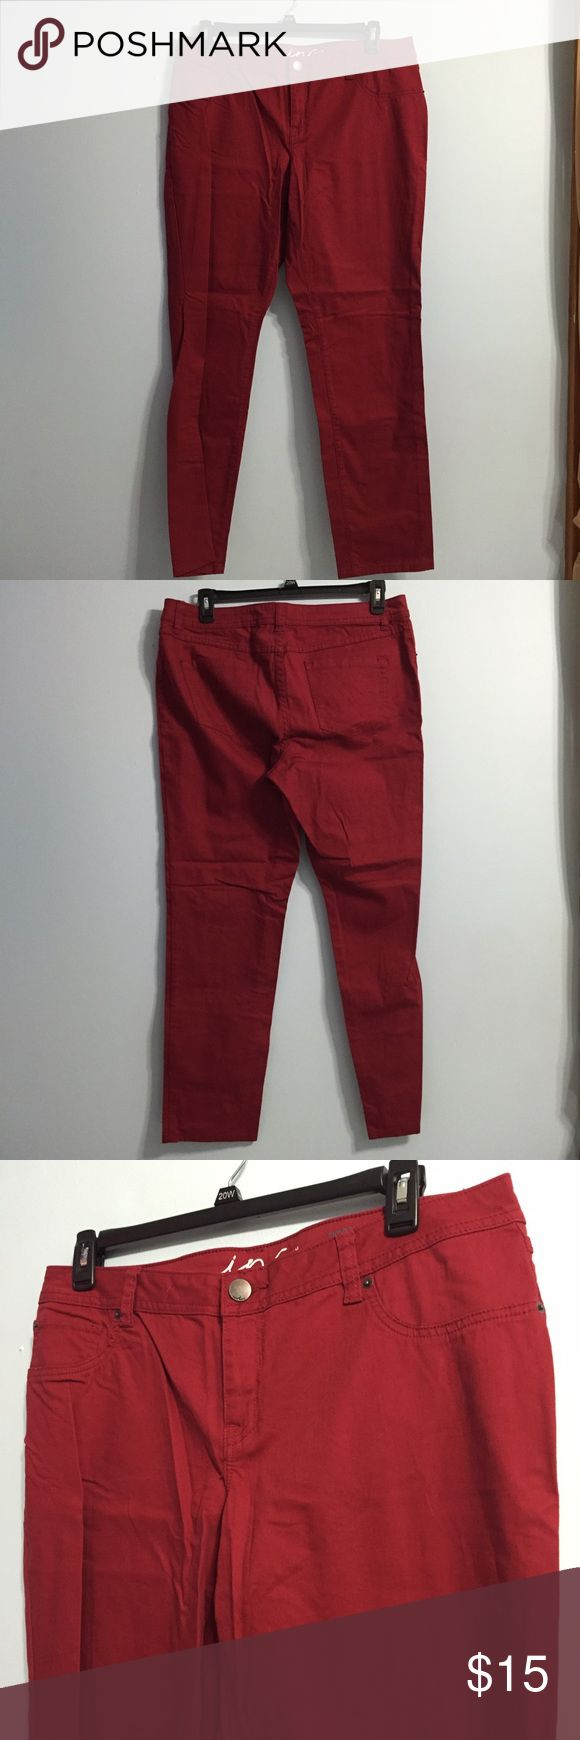 "INC. Red Curvy Fit Skinny Jeans (16) INC. Denim Red Curvy Fit Skinny Jeans in size 16.   Features: Functional pockets on back.  Button and zip close.  Belt loops.   31"" inseam 10"" rise INC International Concepts Jeans Skinny"